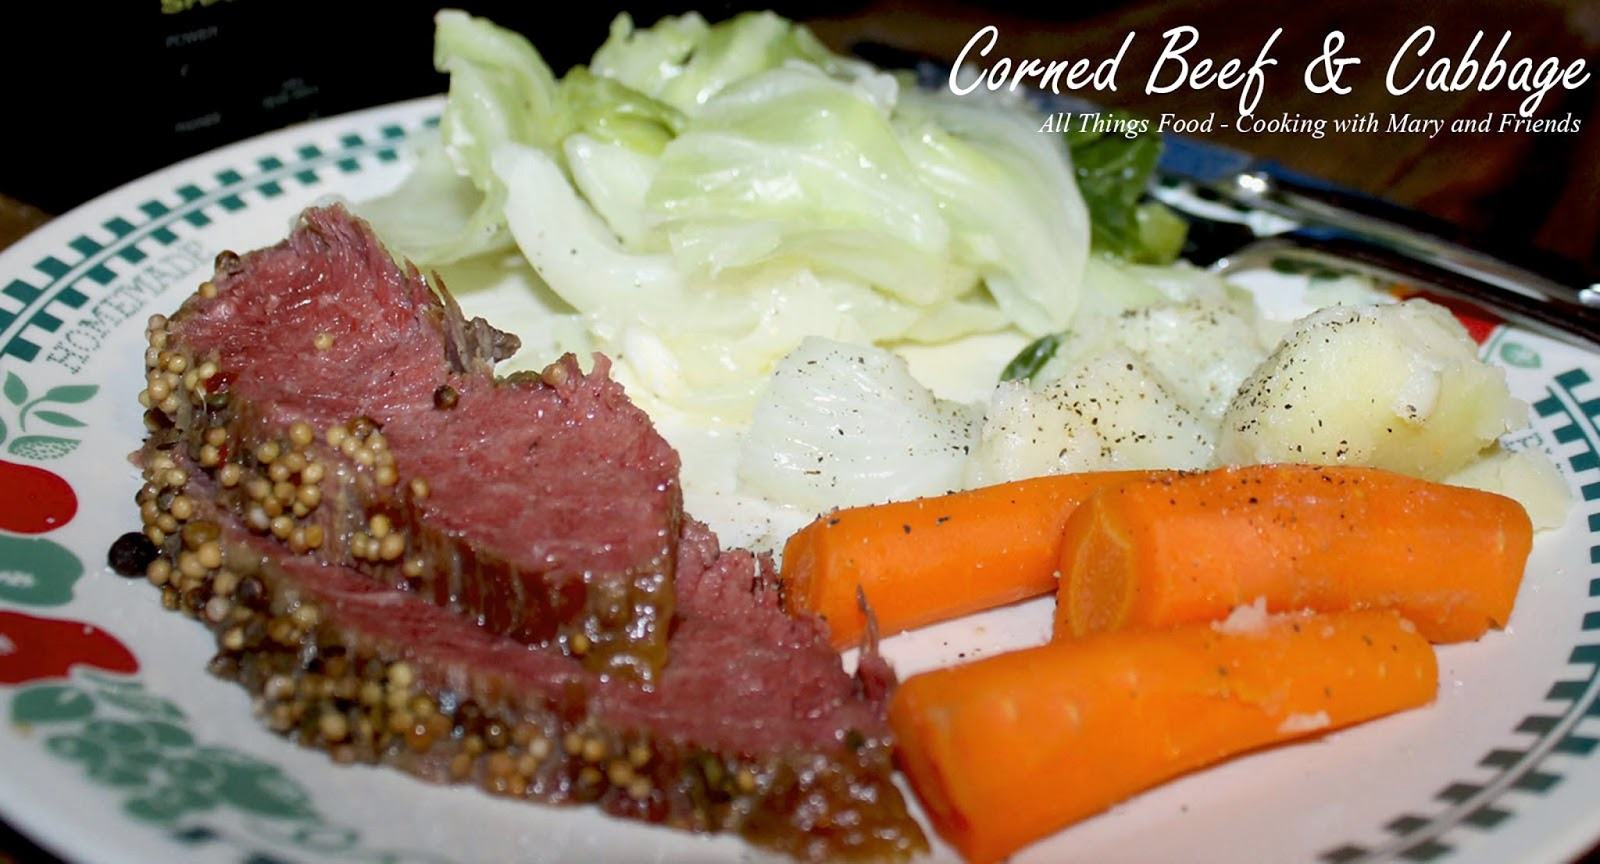 1 3 1 2 4 Lb Corned Beef Brisket With Seasoning Packet 5 6 Medium Carrots Peeled And Cut In Half 1 Large Onion Quartered